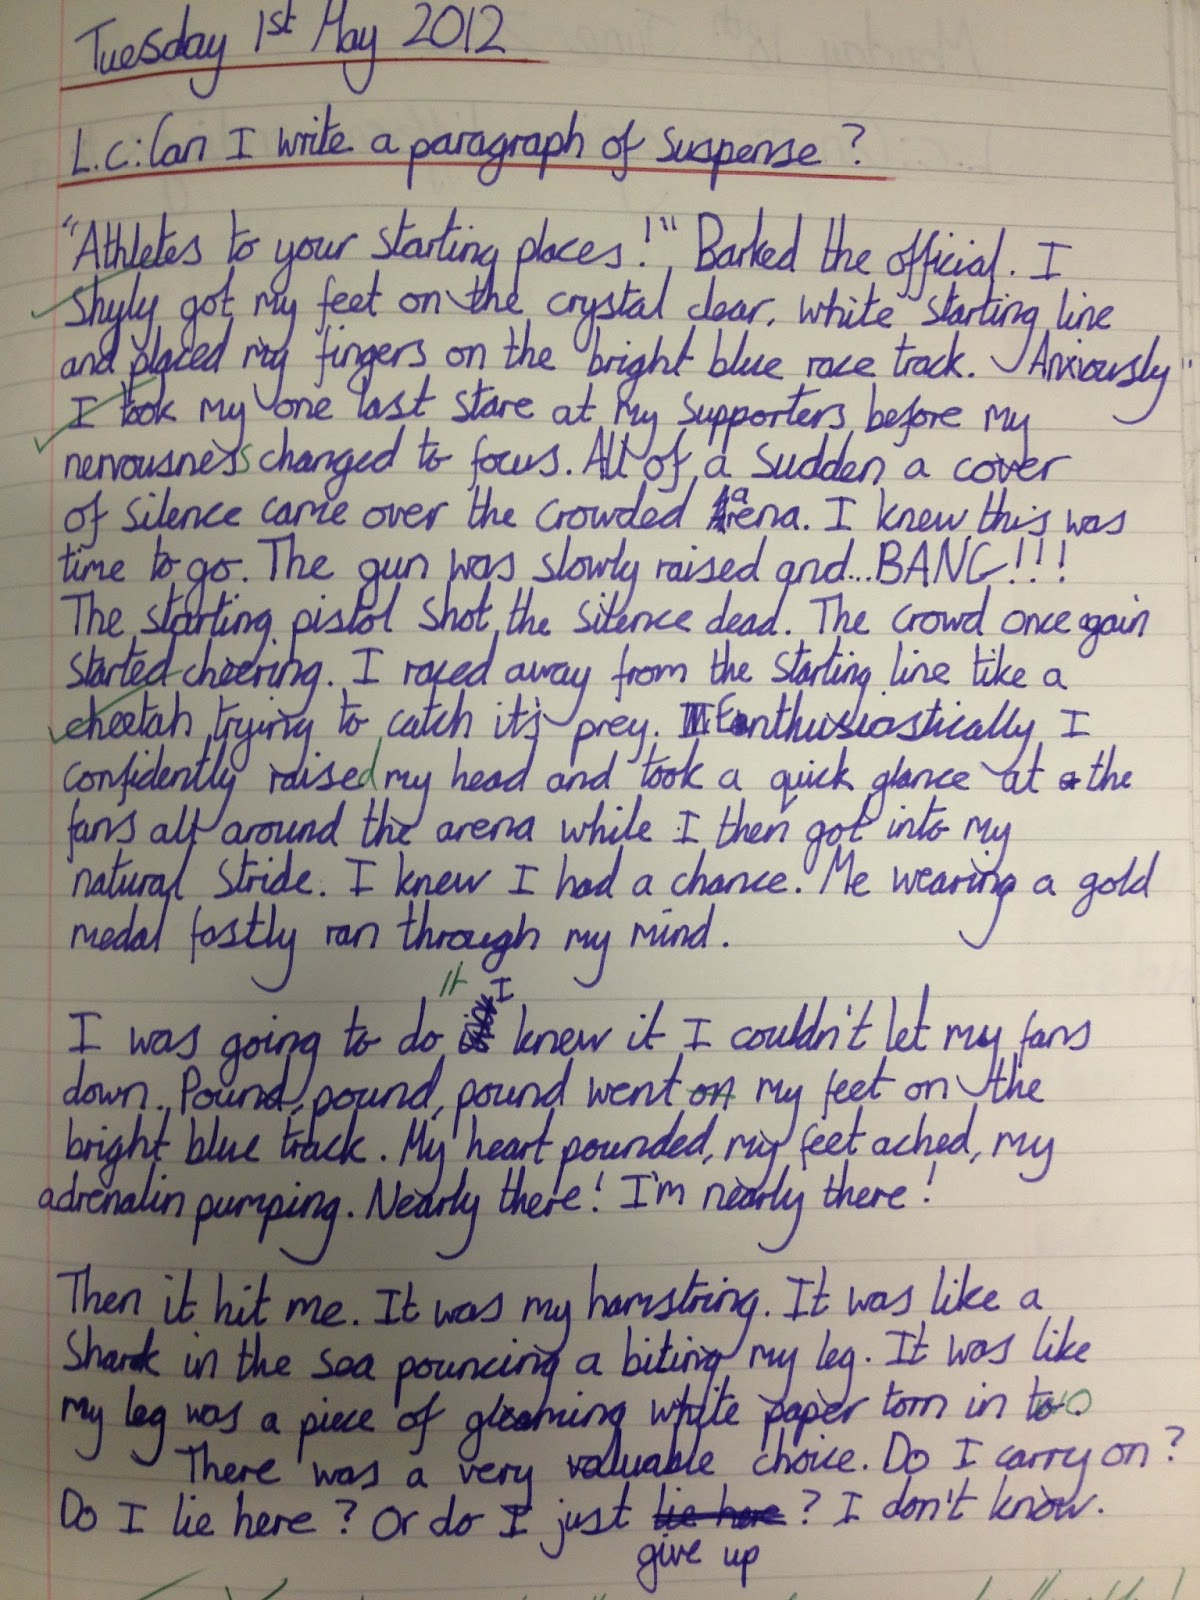 Boast essay about yourself